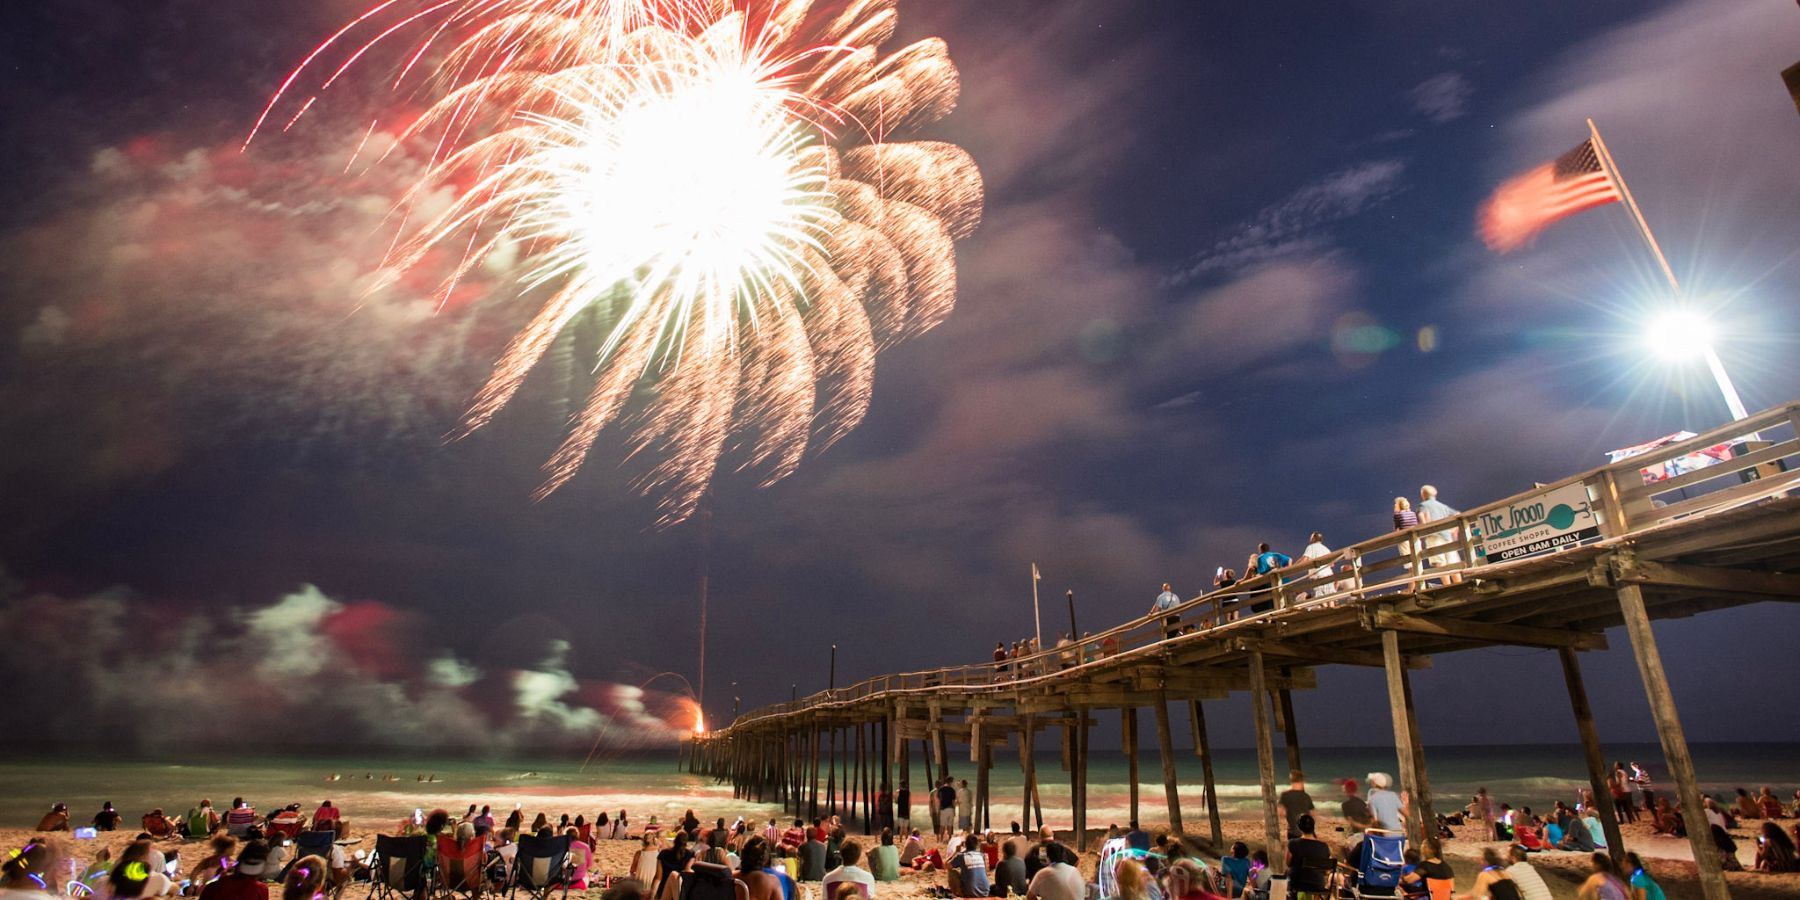 Fireworks are bursting over the Avon Pier while the crowd gathers below to watch. The American Flag is flying high above while the fireworks light up the sky on the 4th of July.